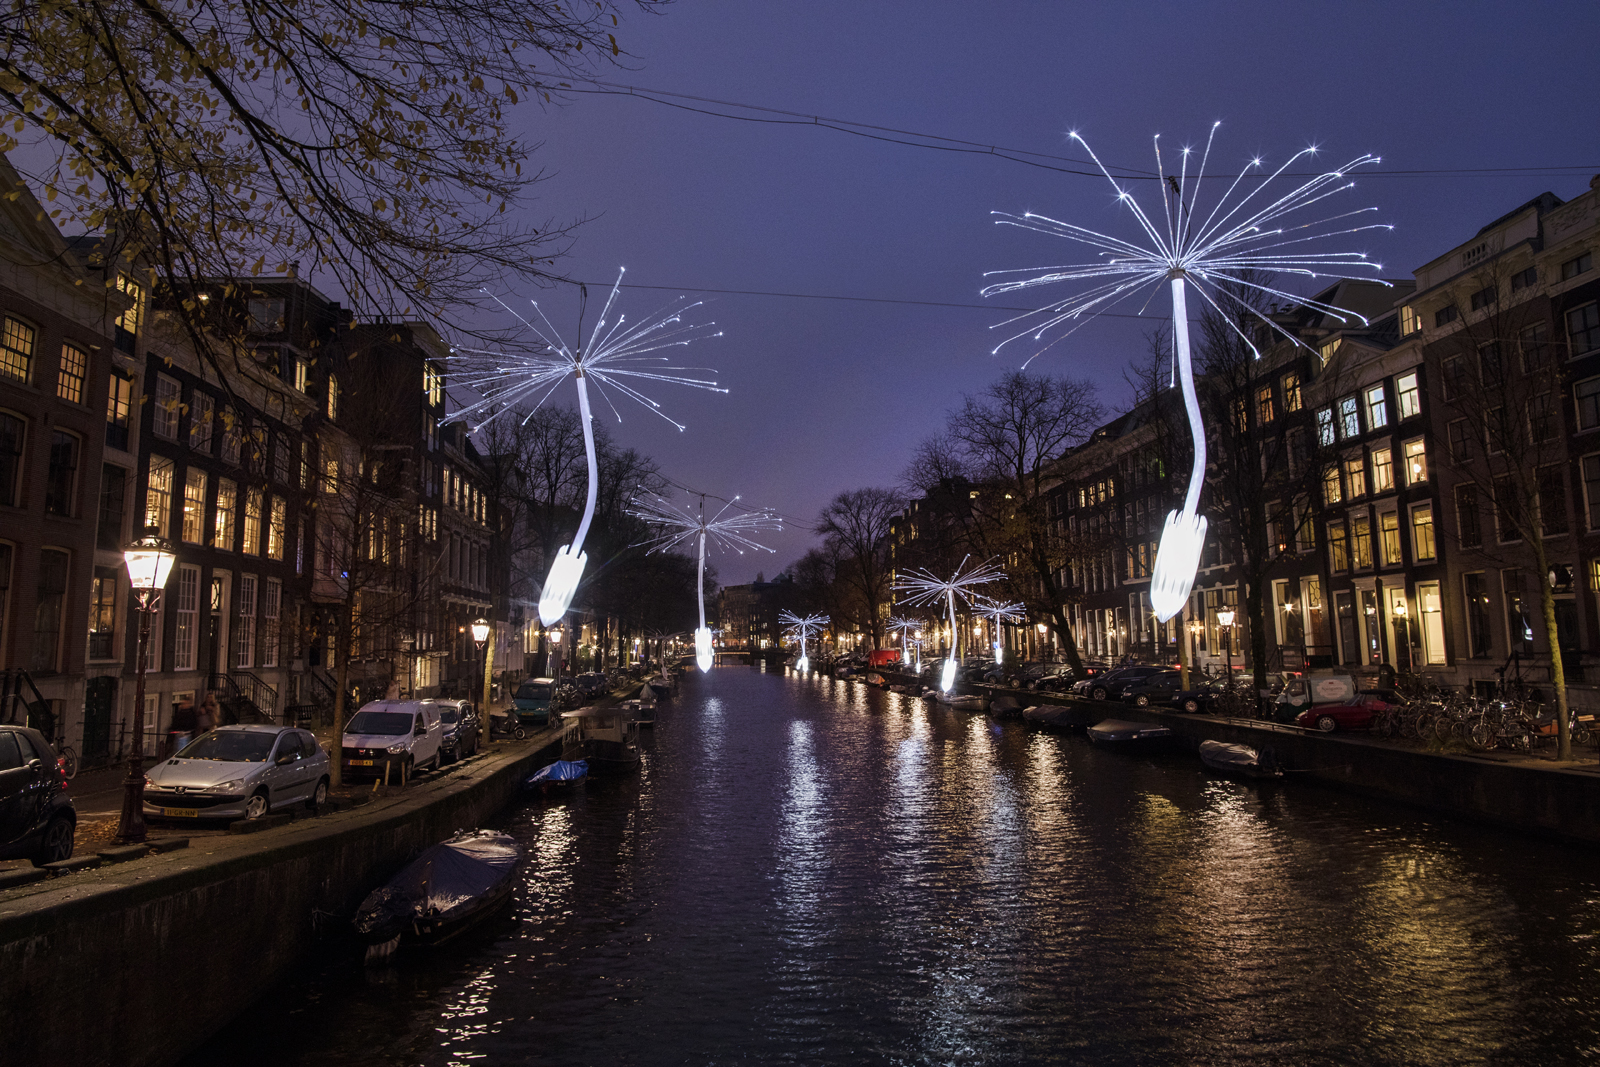 Giant, sparkling dandelion seed heads over Amsterdam's canals